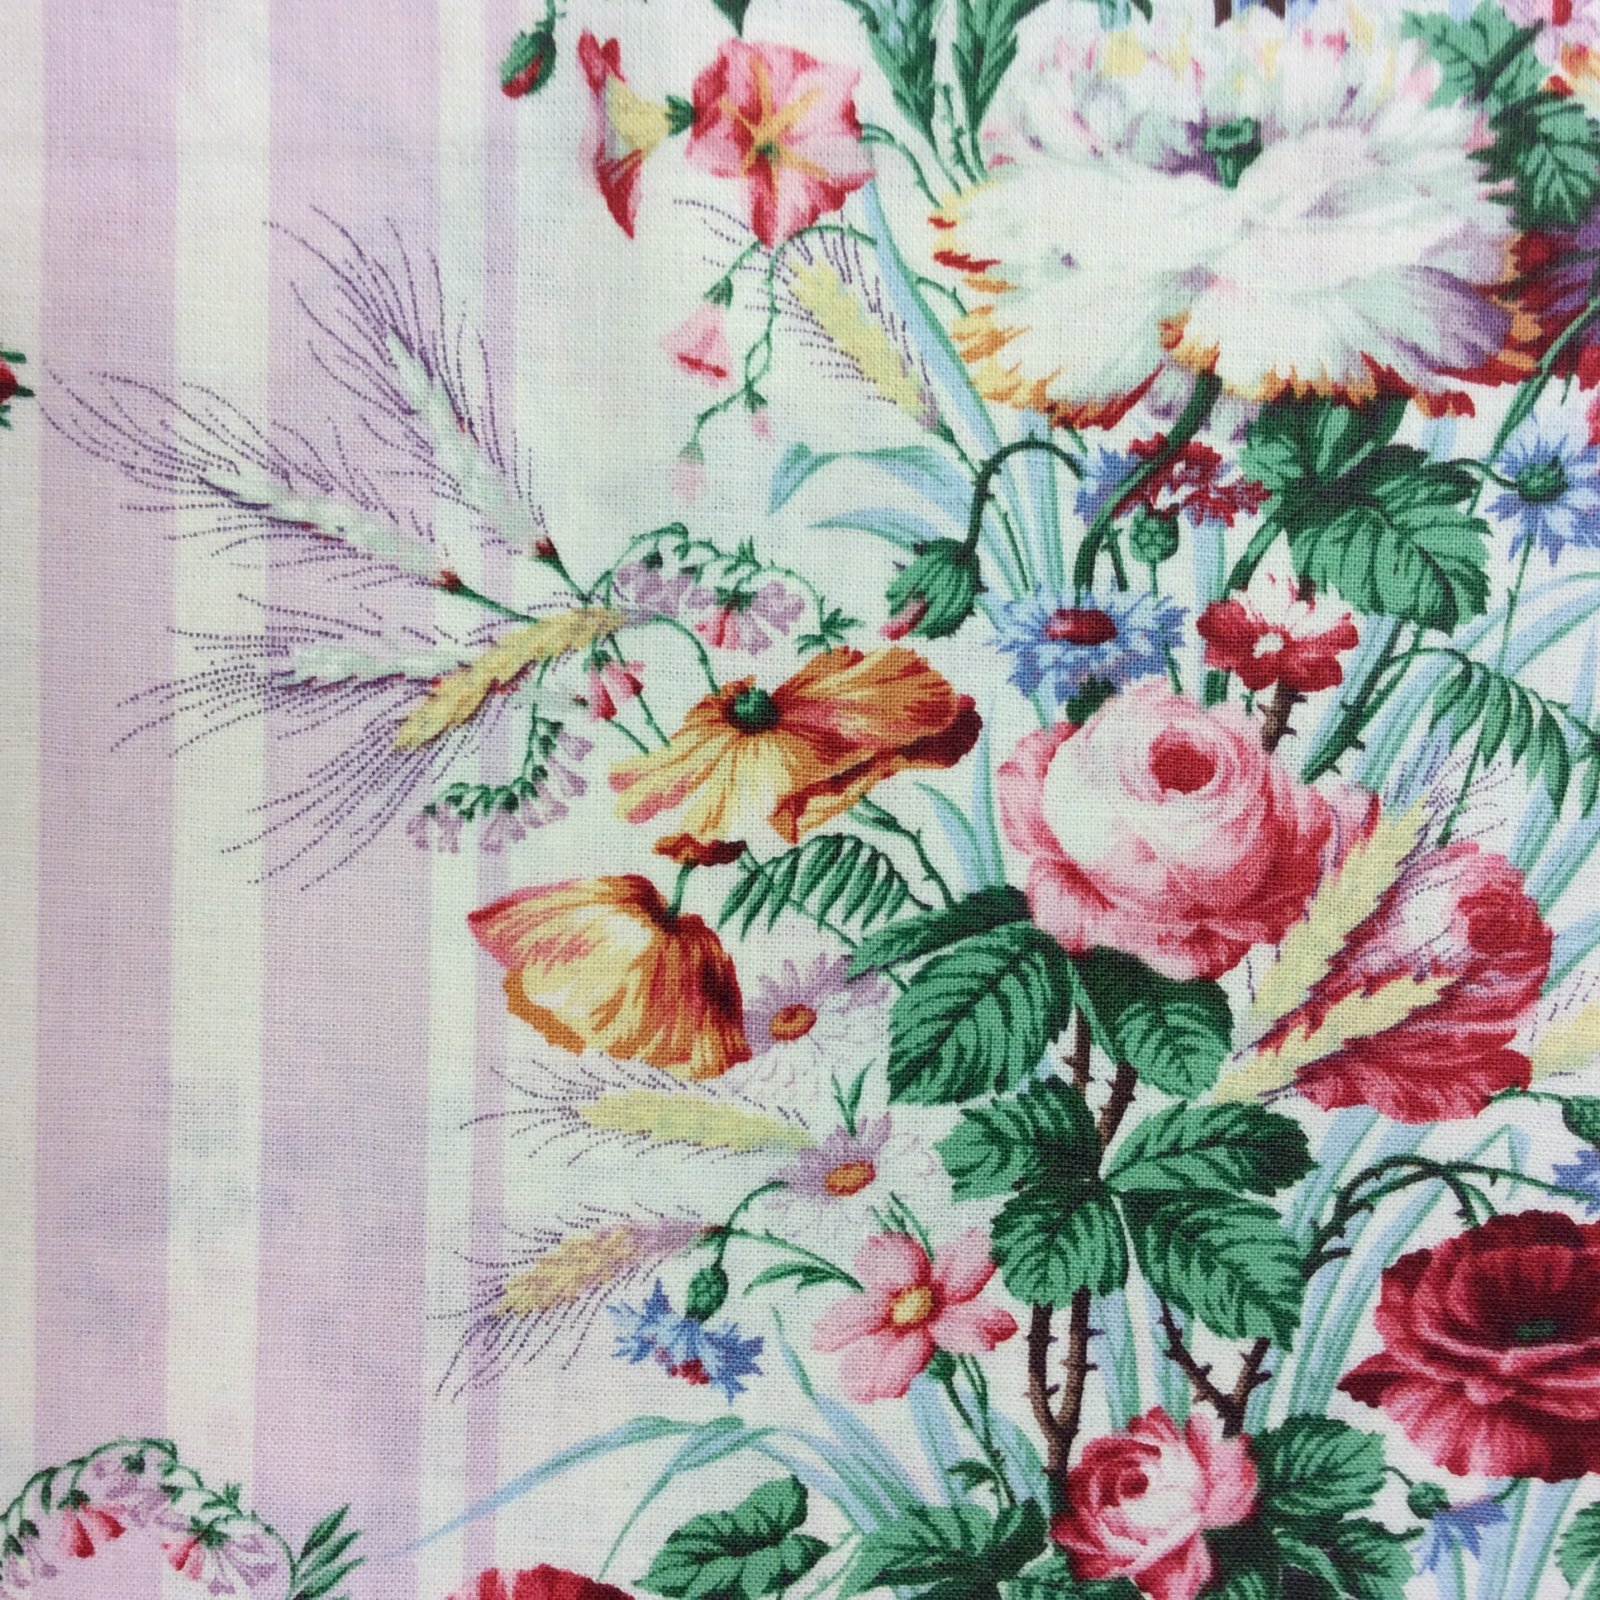 MD75 Floral Shabby French Country Chic VTG Look Garden Cotton Quilt Fabric MD75